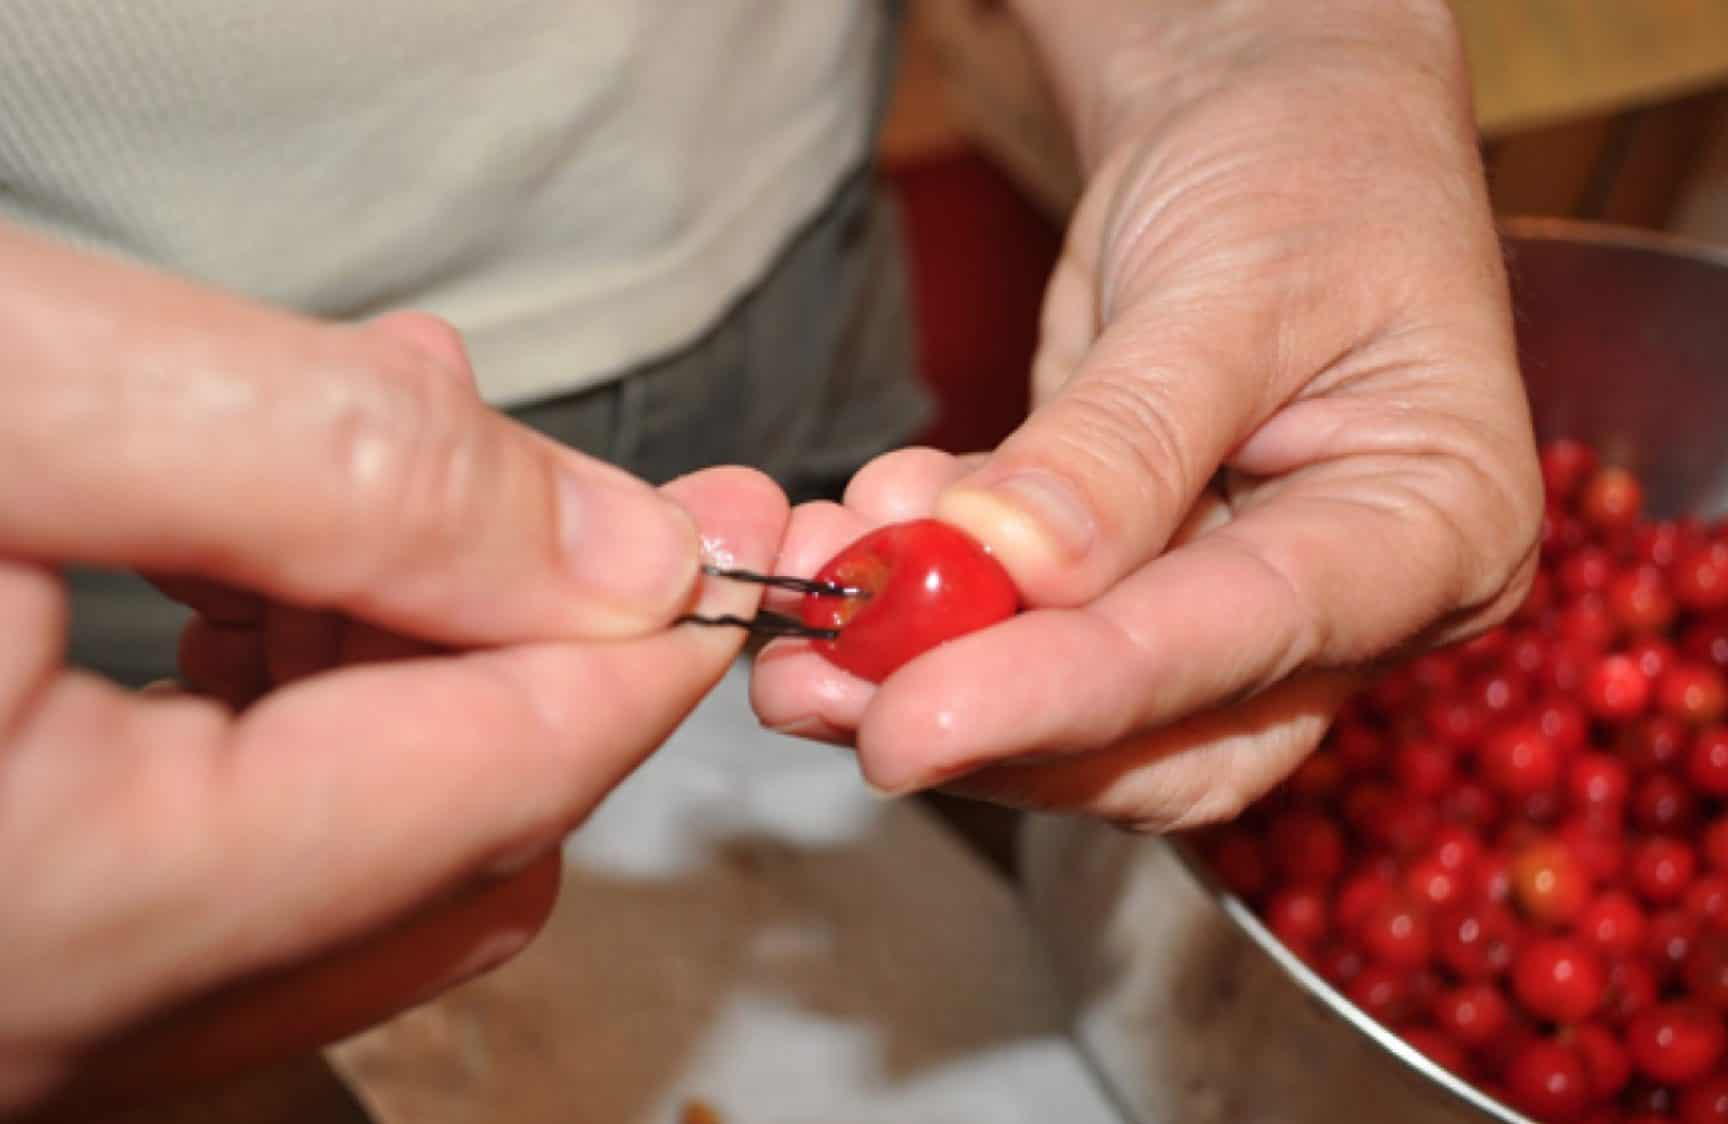 Cherries need preparation before dogs can eat them.